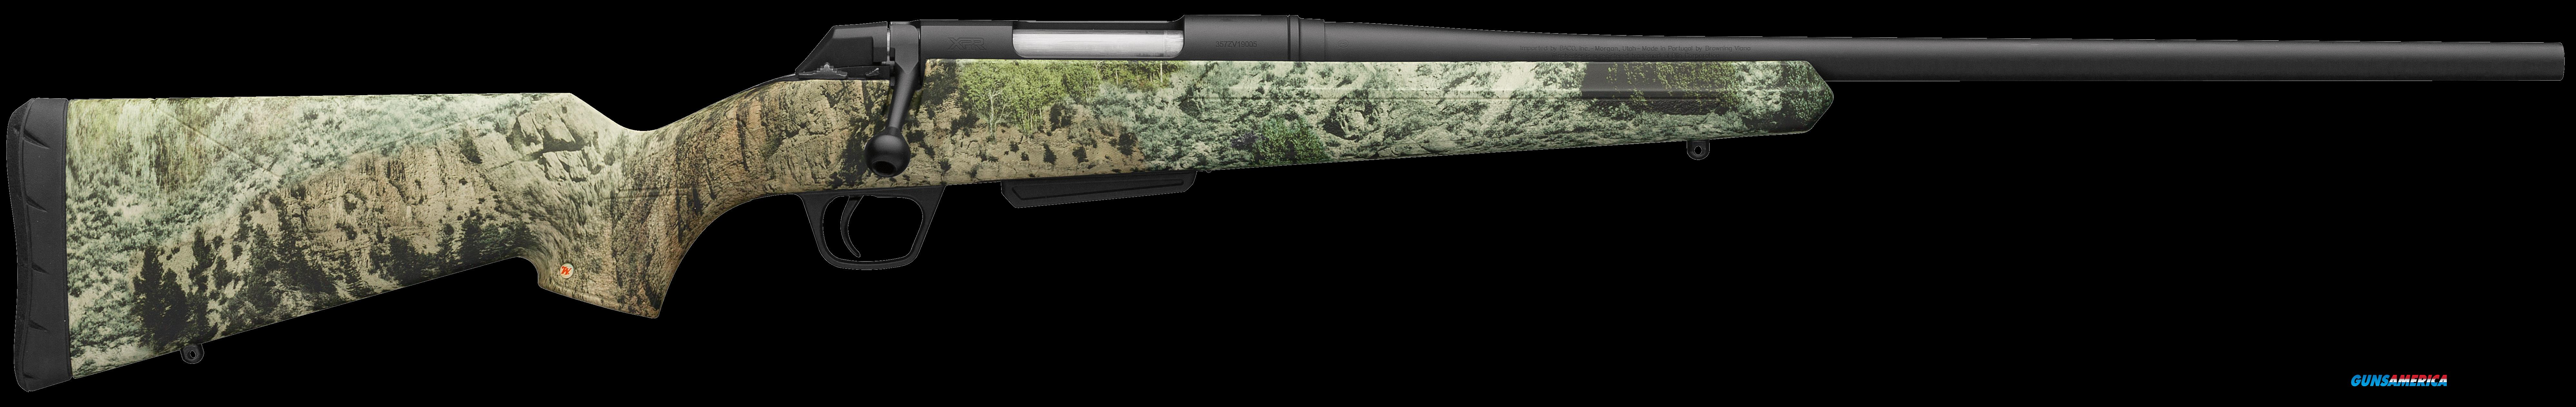 "Winchester Guns 535722236 XPR Hunter MCR Bolt 338 Winchester Magnum 24"" 3+1 Synthetic Mossy Oak  Guns > Rifles > W Misc Rifles"